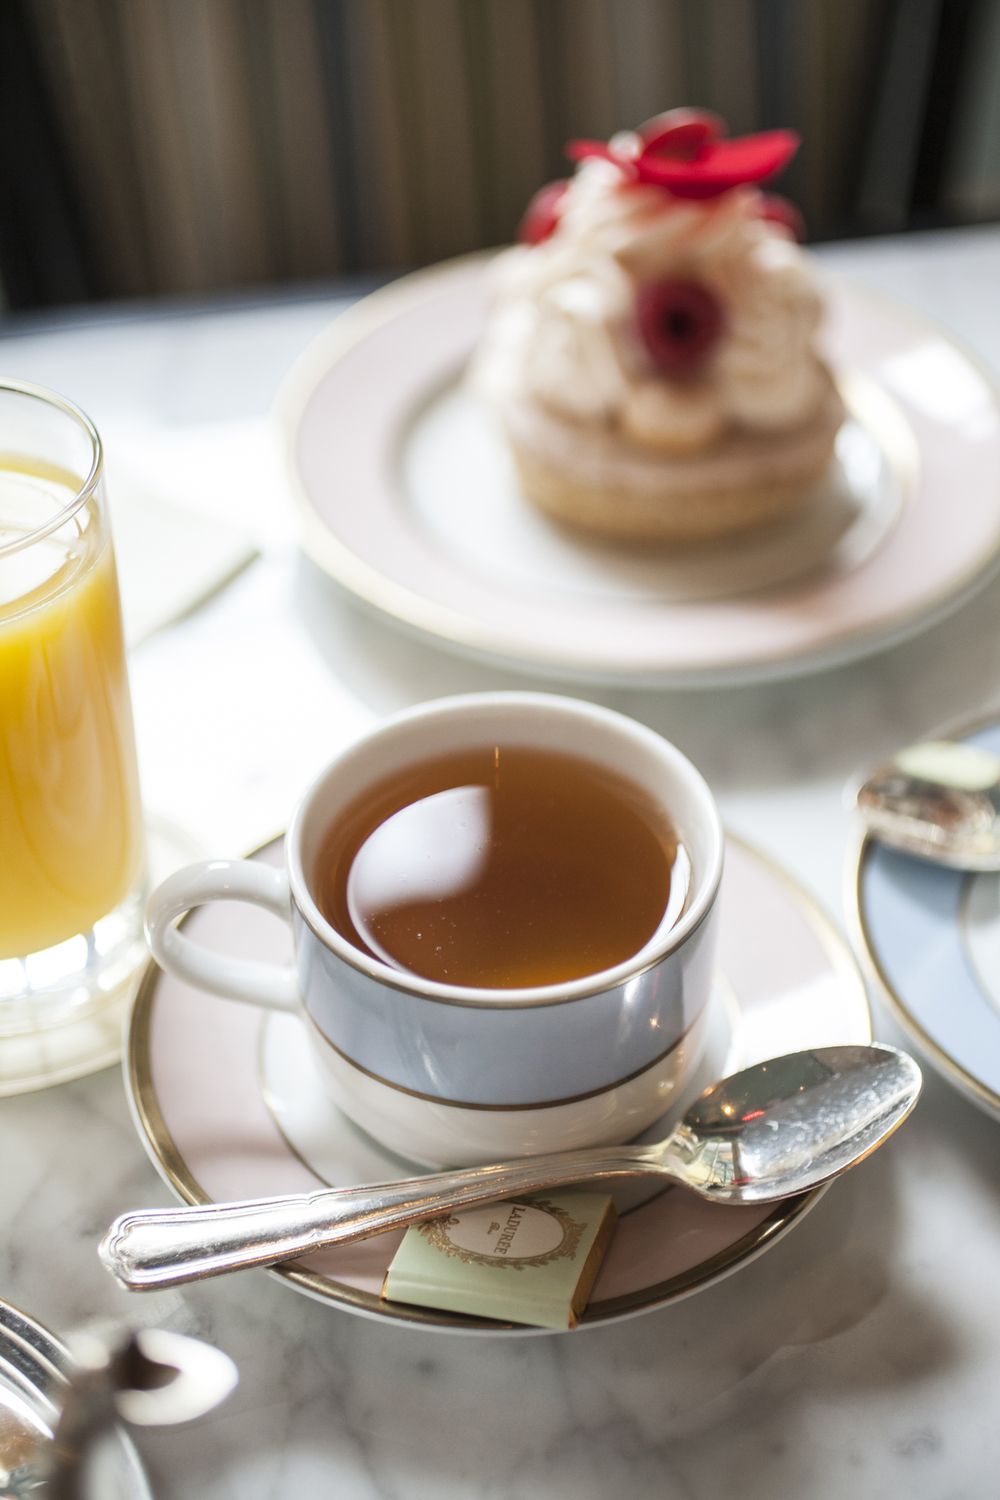 Tea at Ladurée